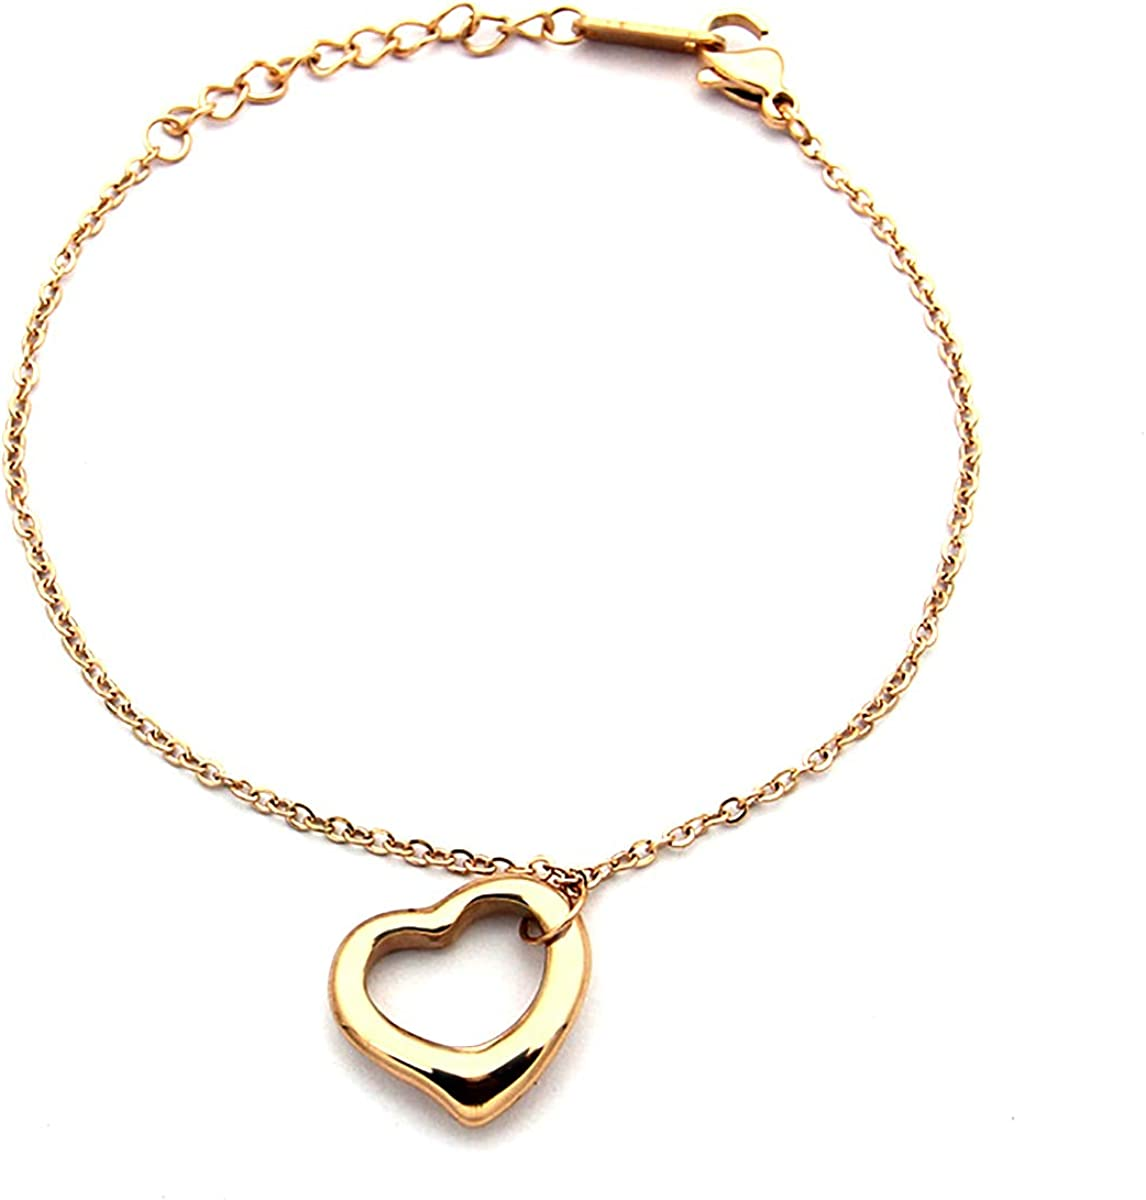 ❤Silver Rose gold mesh buckle bracelet Stainless Steal Hearts stones Love Charms